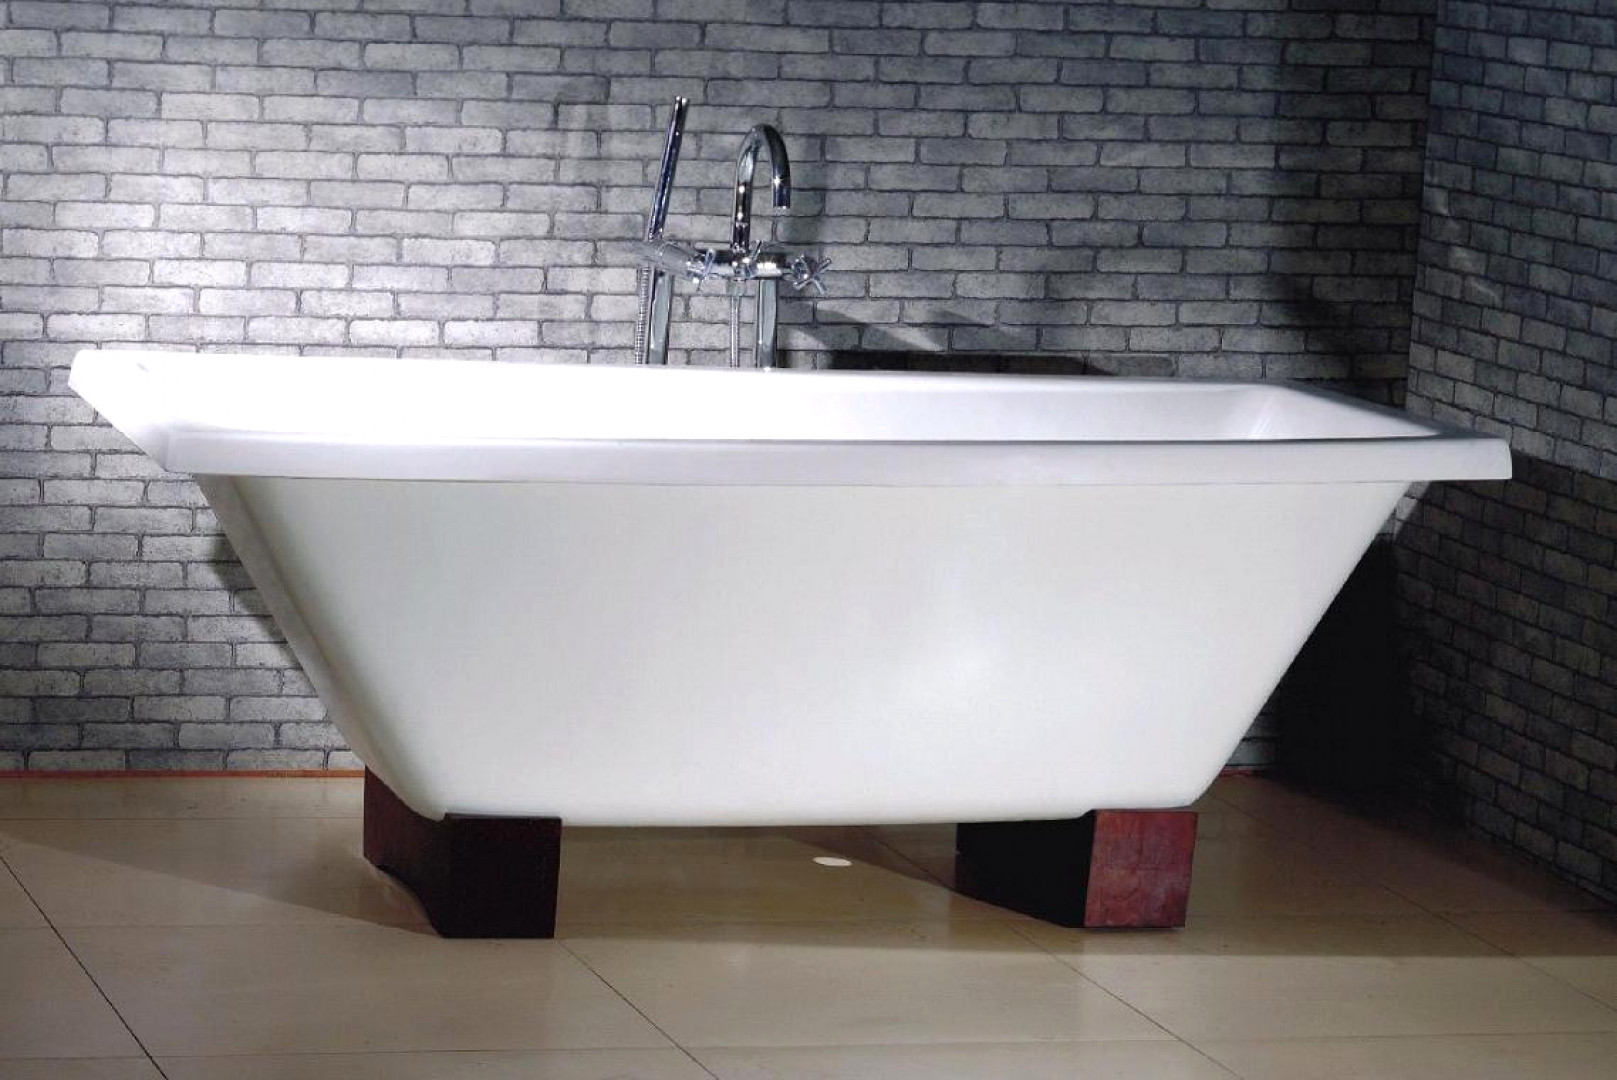 Refinish Cast Iron Bathtub Nz • Bathtub Ideas